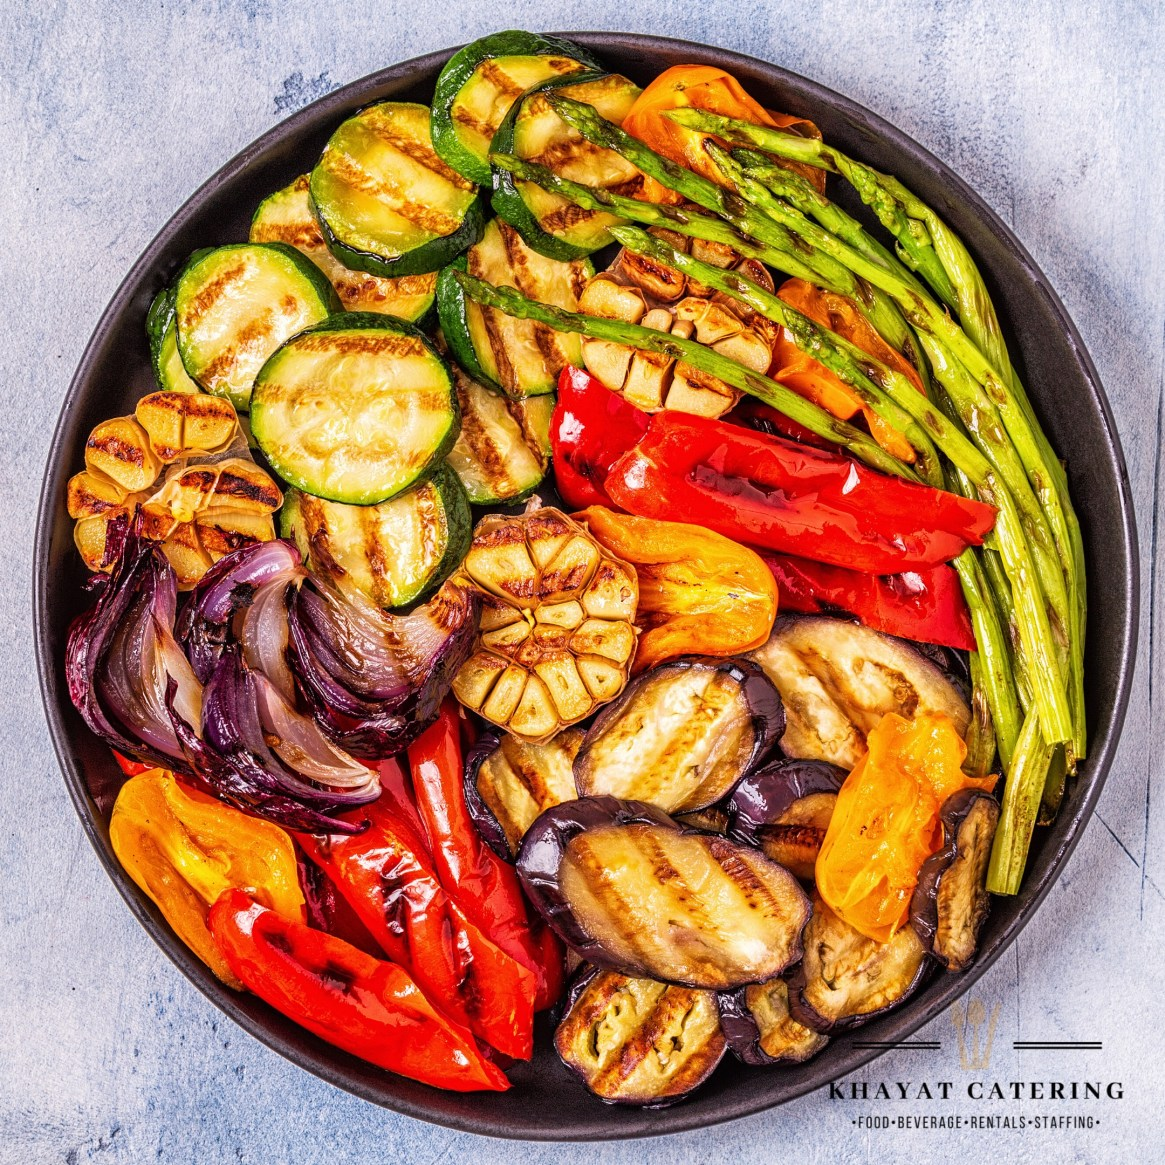 Khayat Catering assorted roasted vegetables